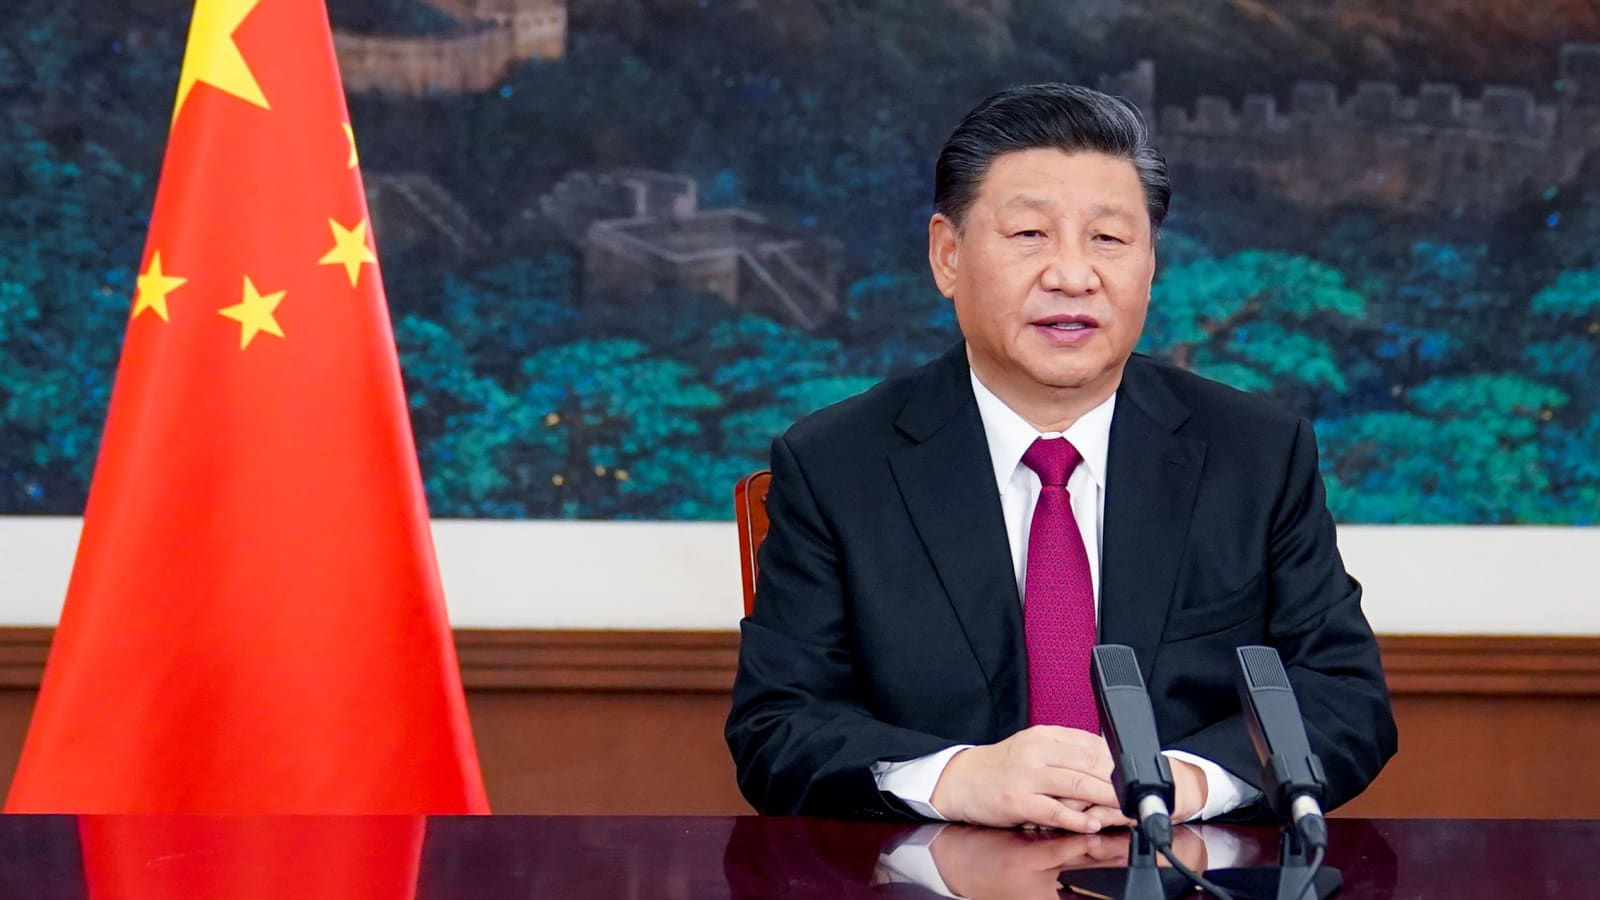 Why is Communist China suddenly so inclusive?